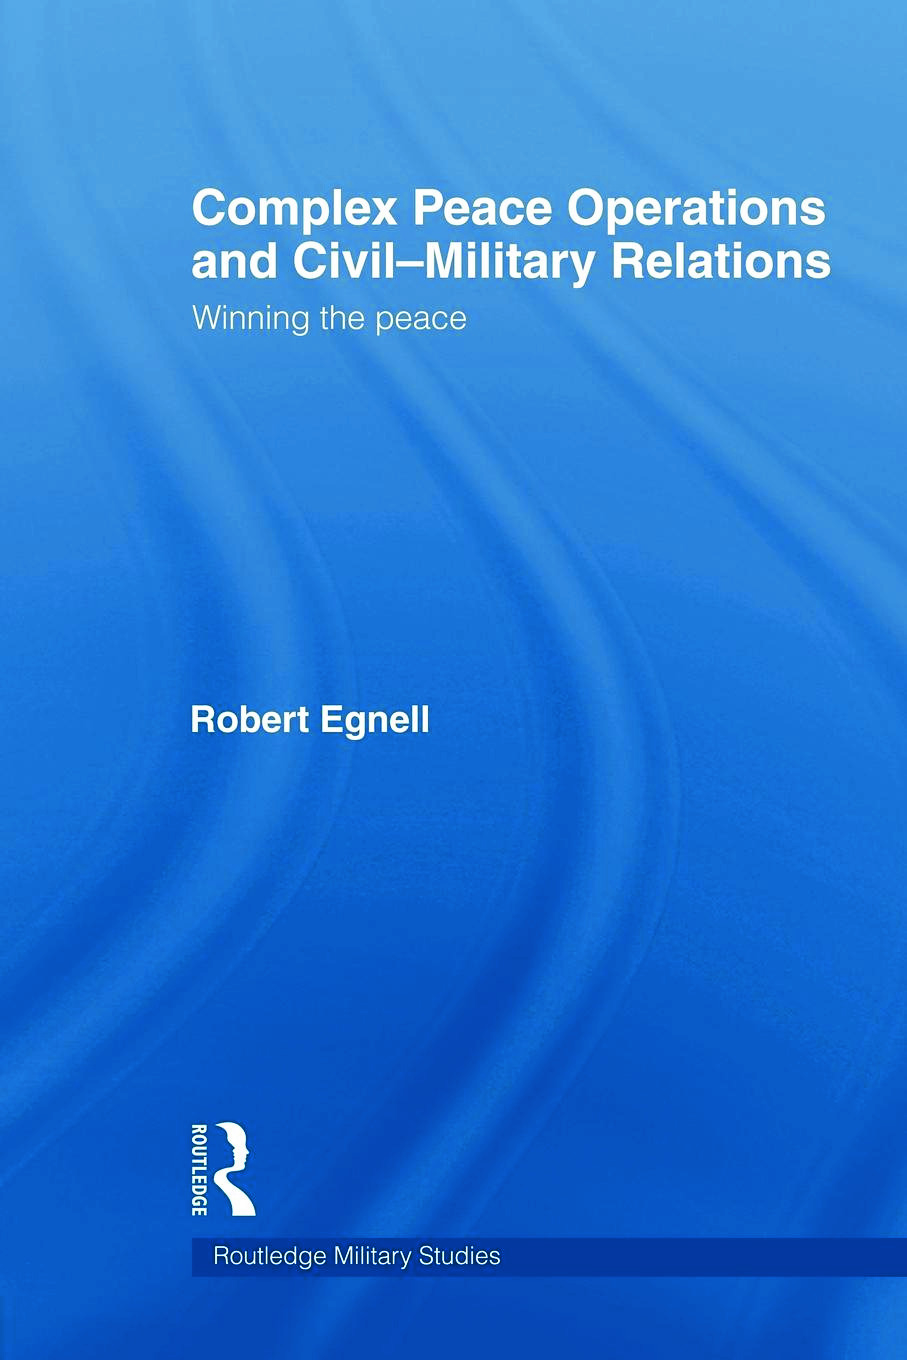 Complex Peace Operations and Civil-Military Relations